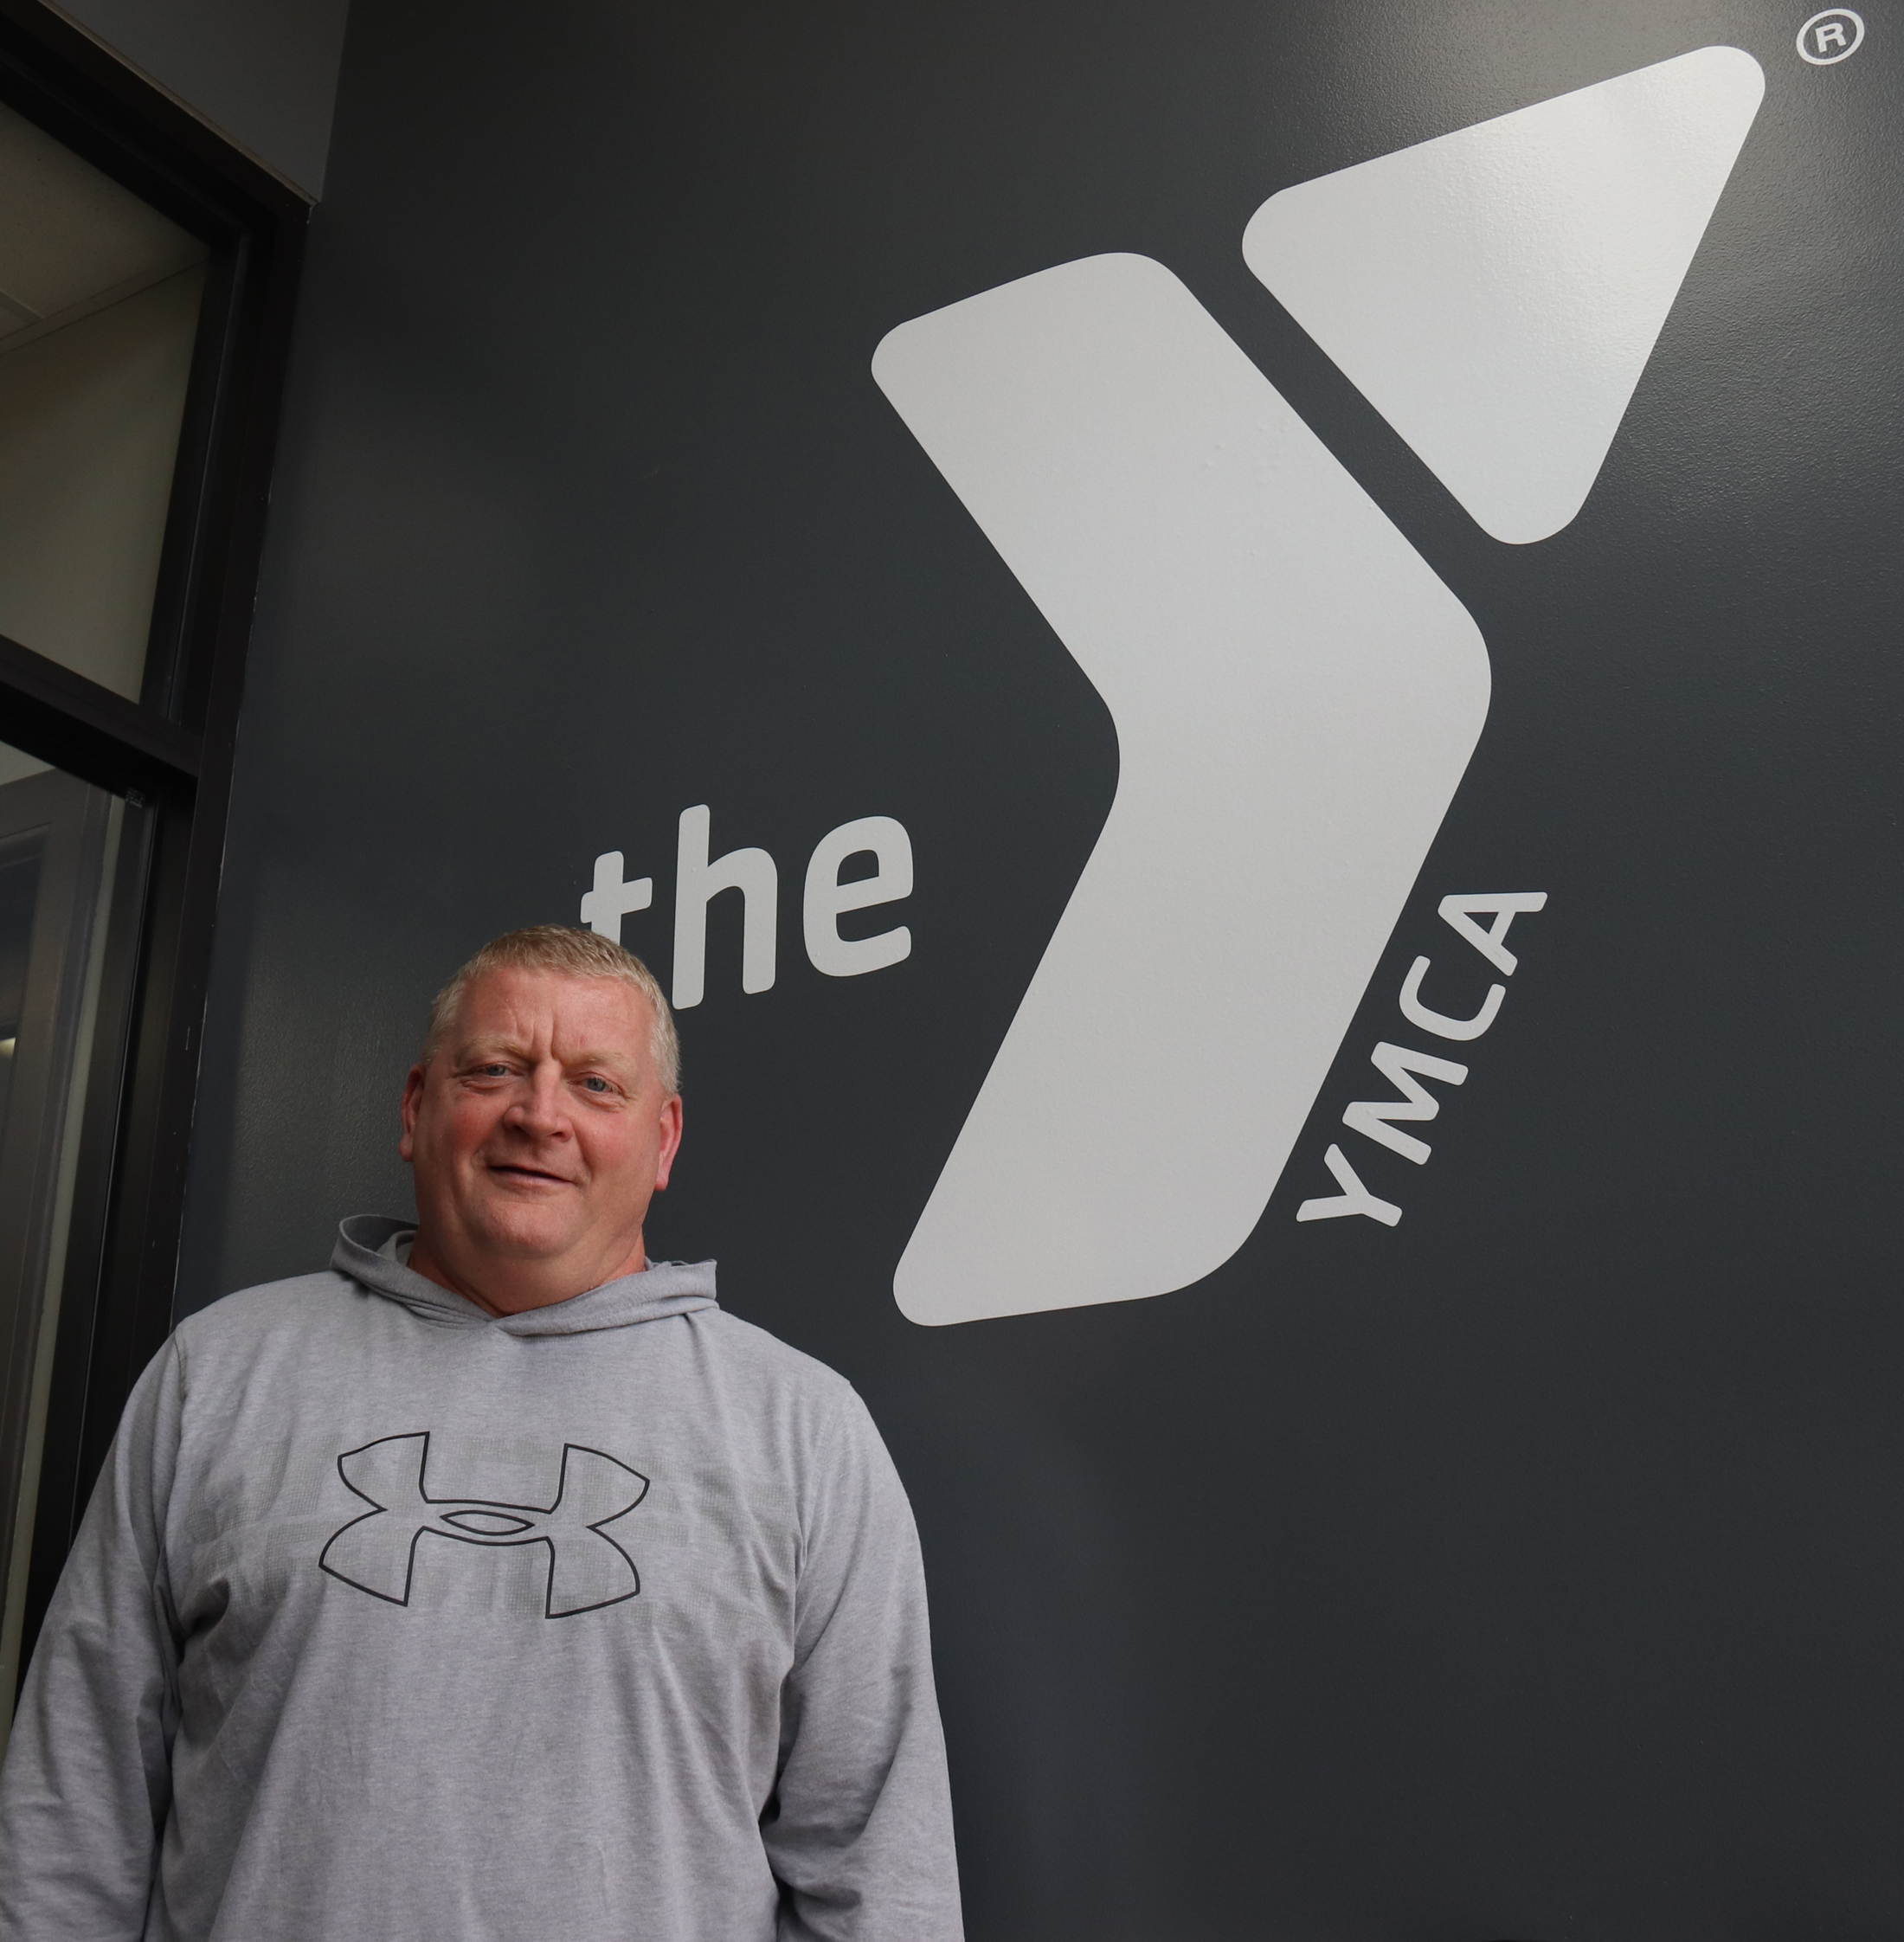 Charles City Family YMCA cautiously reopens